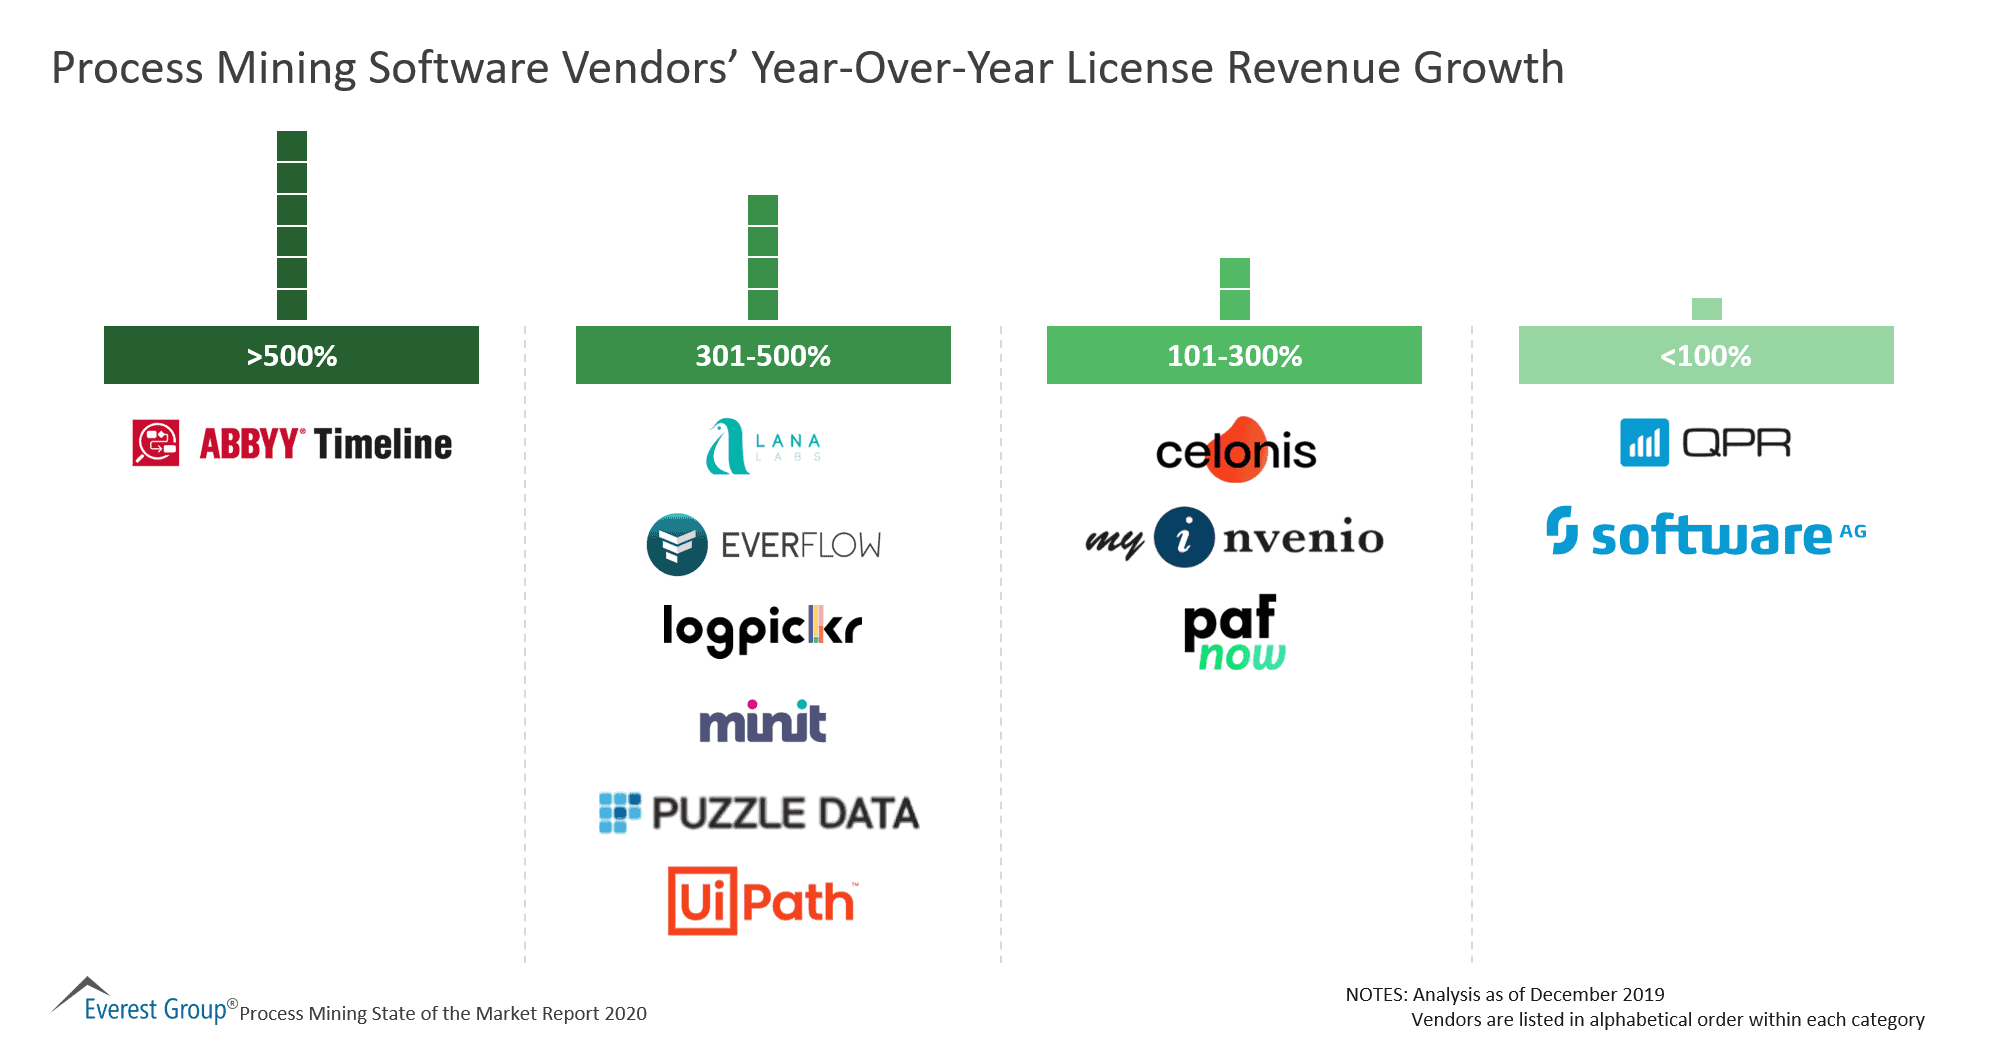 Process Mining Software Vendors' Year-Over-Year License Revenue Growth